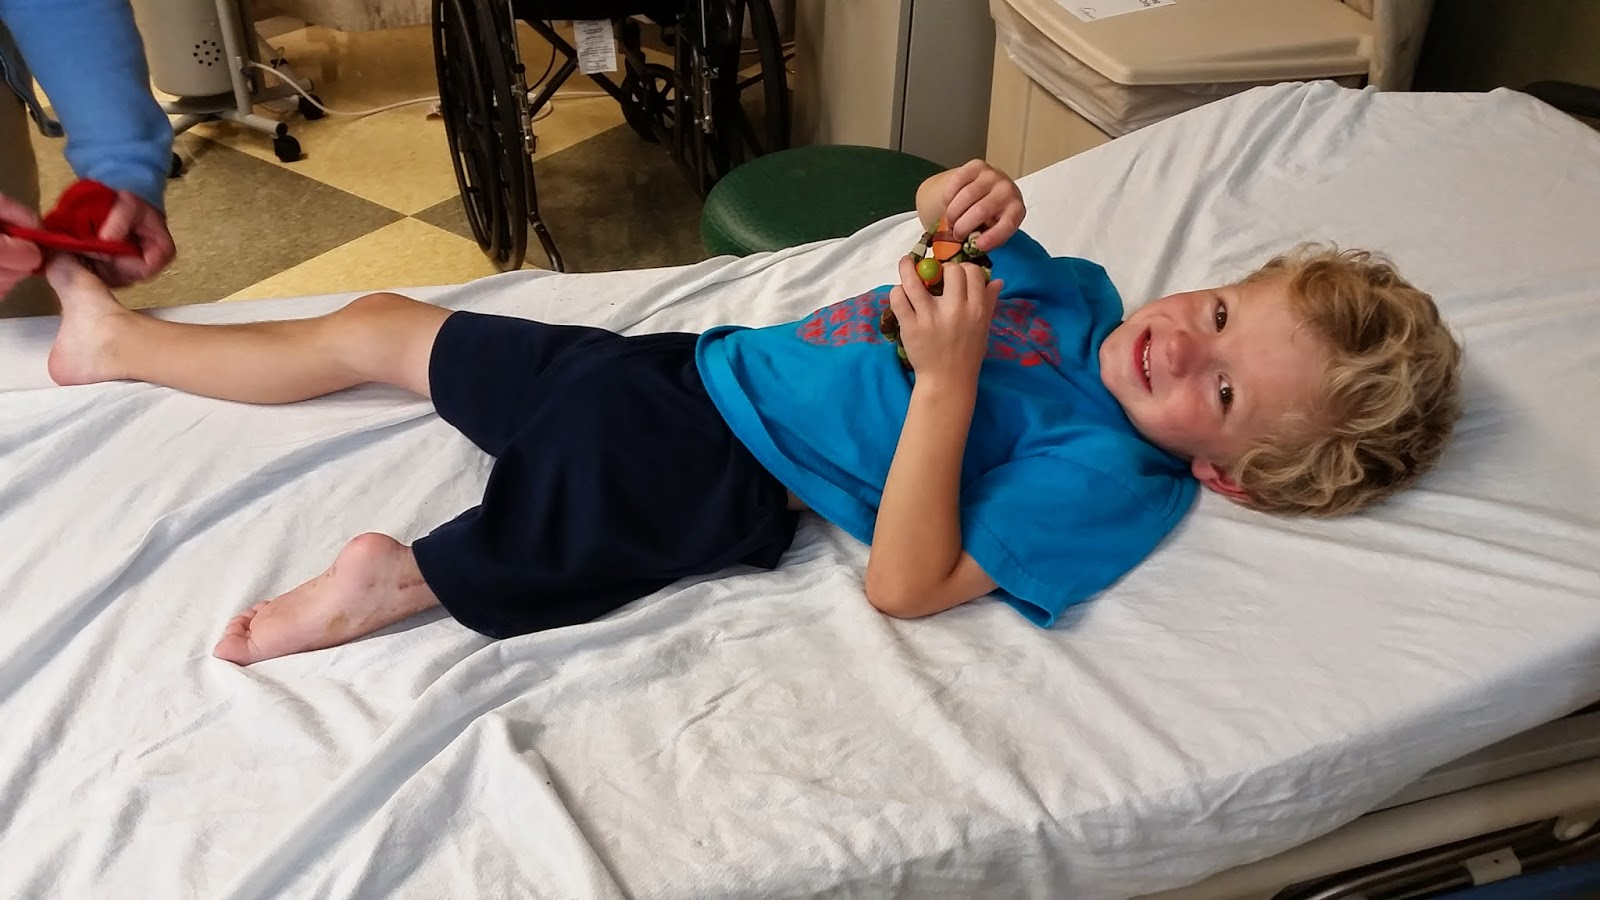 super hero henry cast removal day august 21 2014